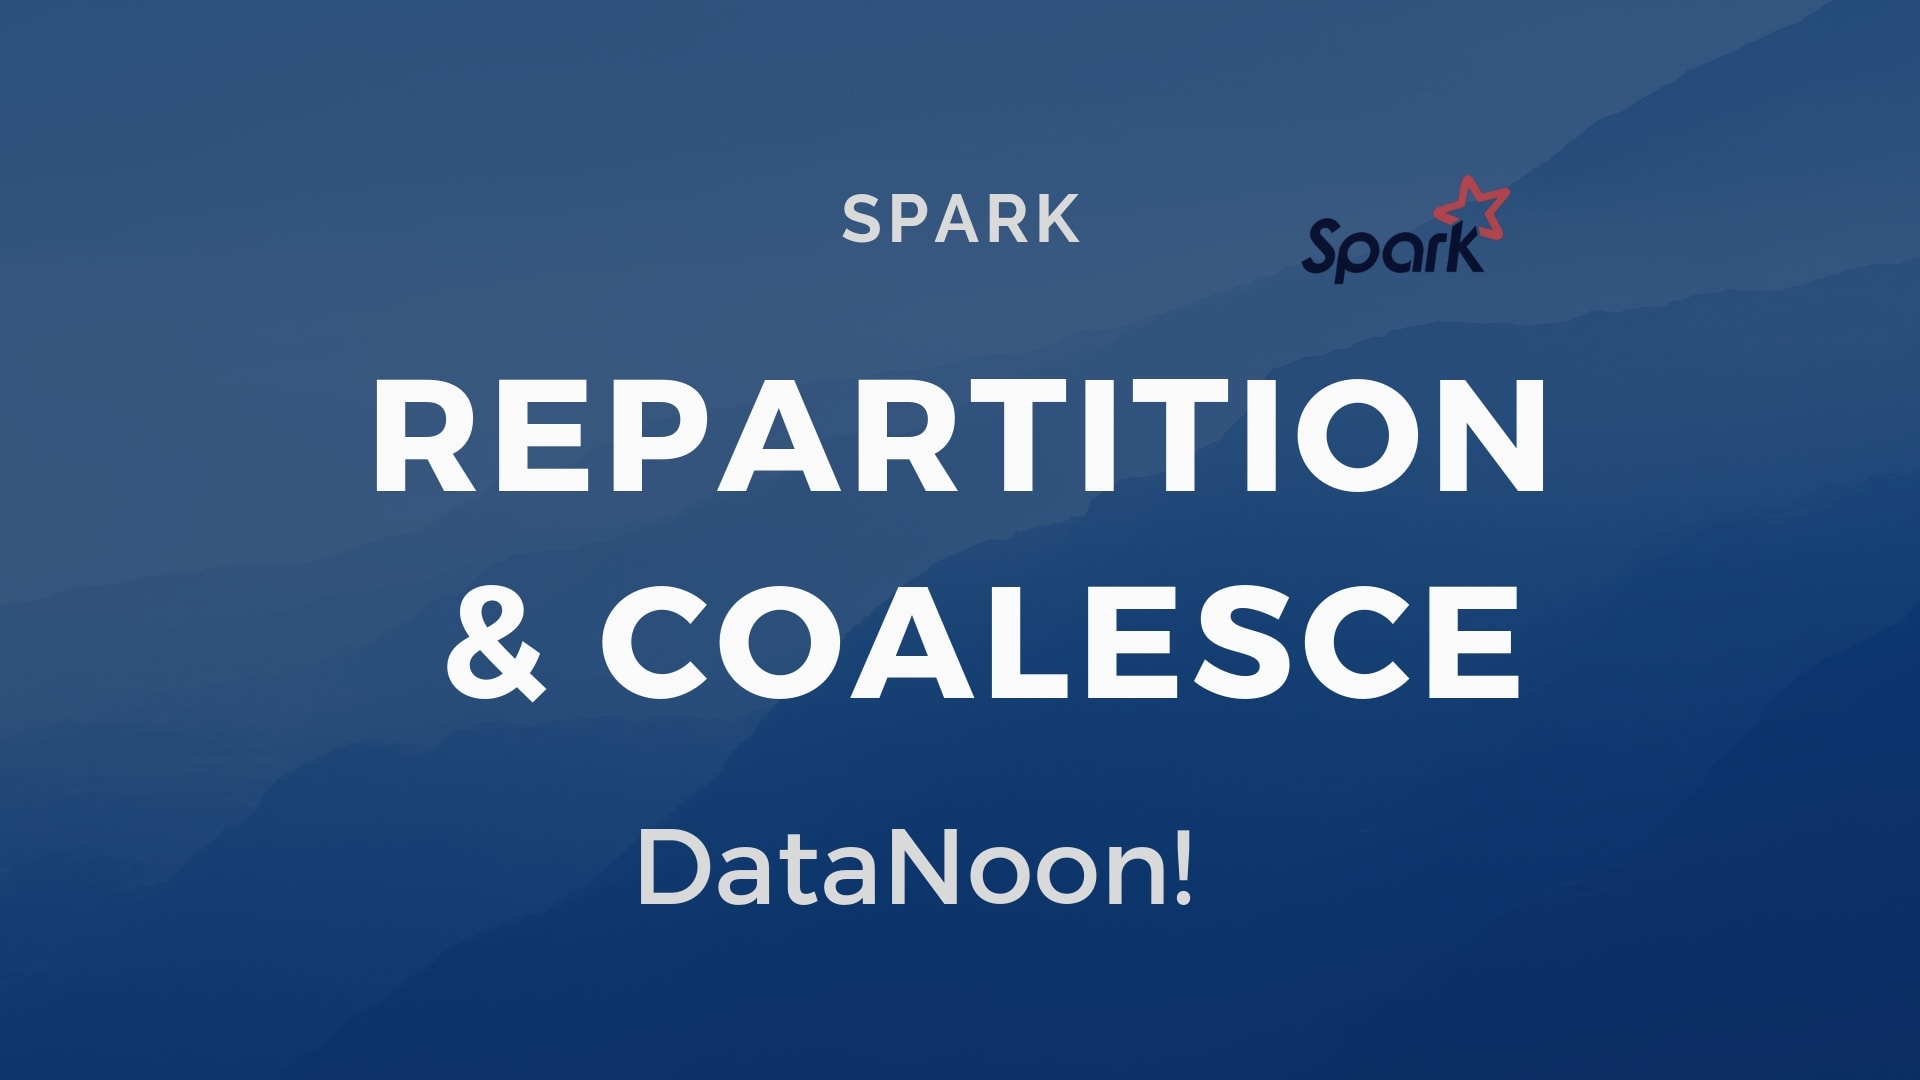 Spark Repartition & Coalesce - Explained